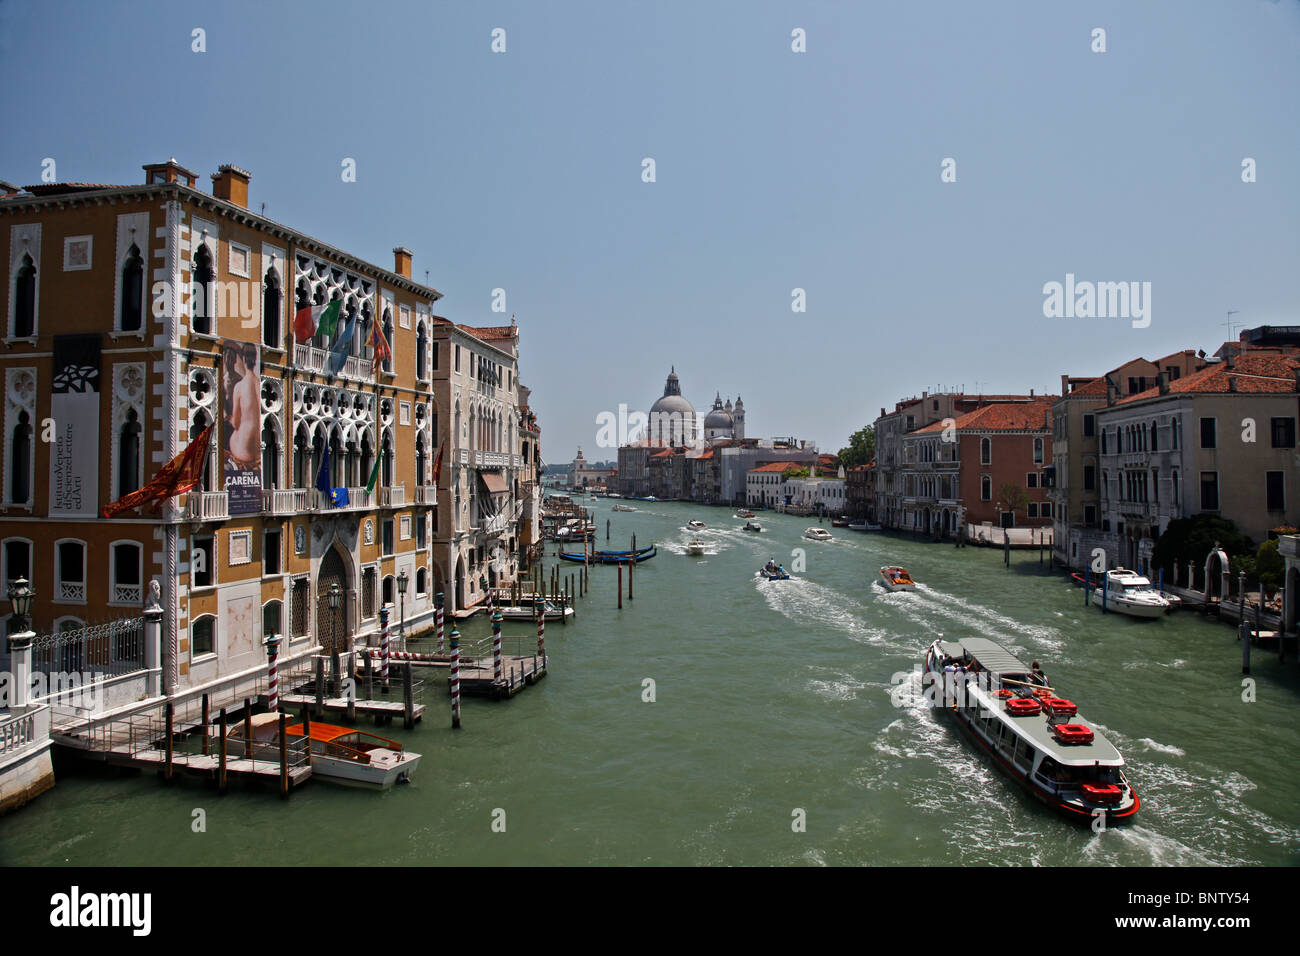 Grand Canal seen from Academia Bridge in bright daylight - Stock Image